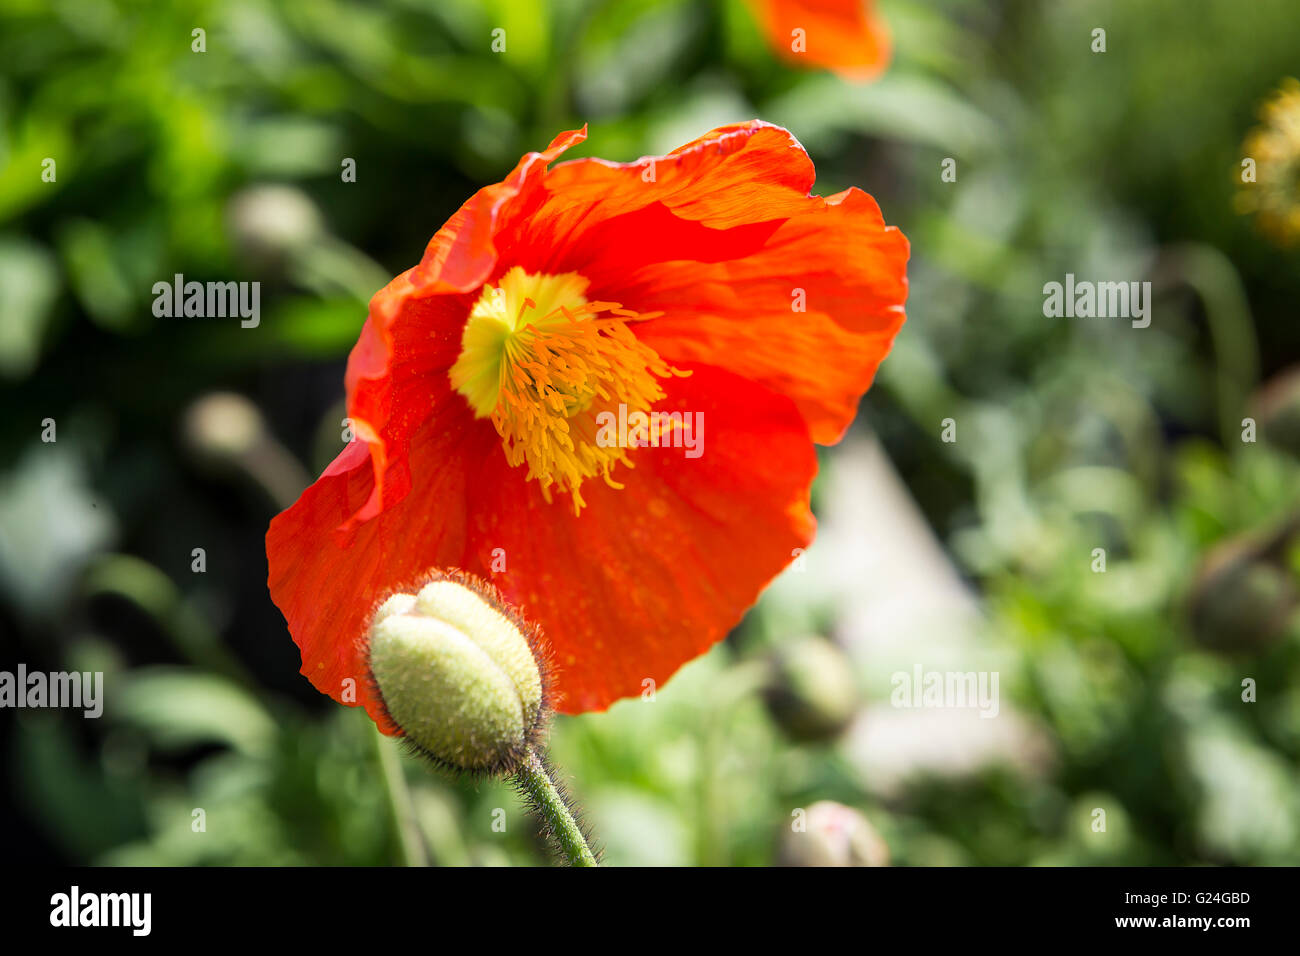 arctic poppies stockfotos arctic poppies bilder alamy. Black Bedroom Furniture Sets. Home Design Ideas